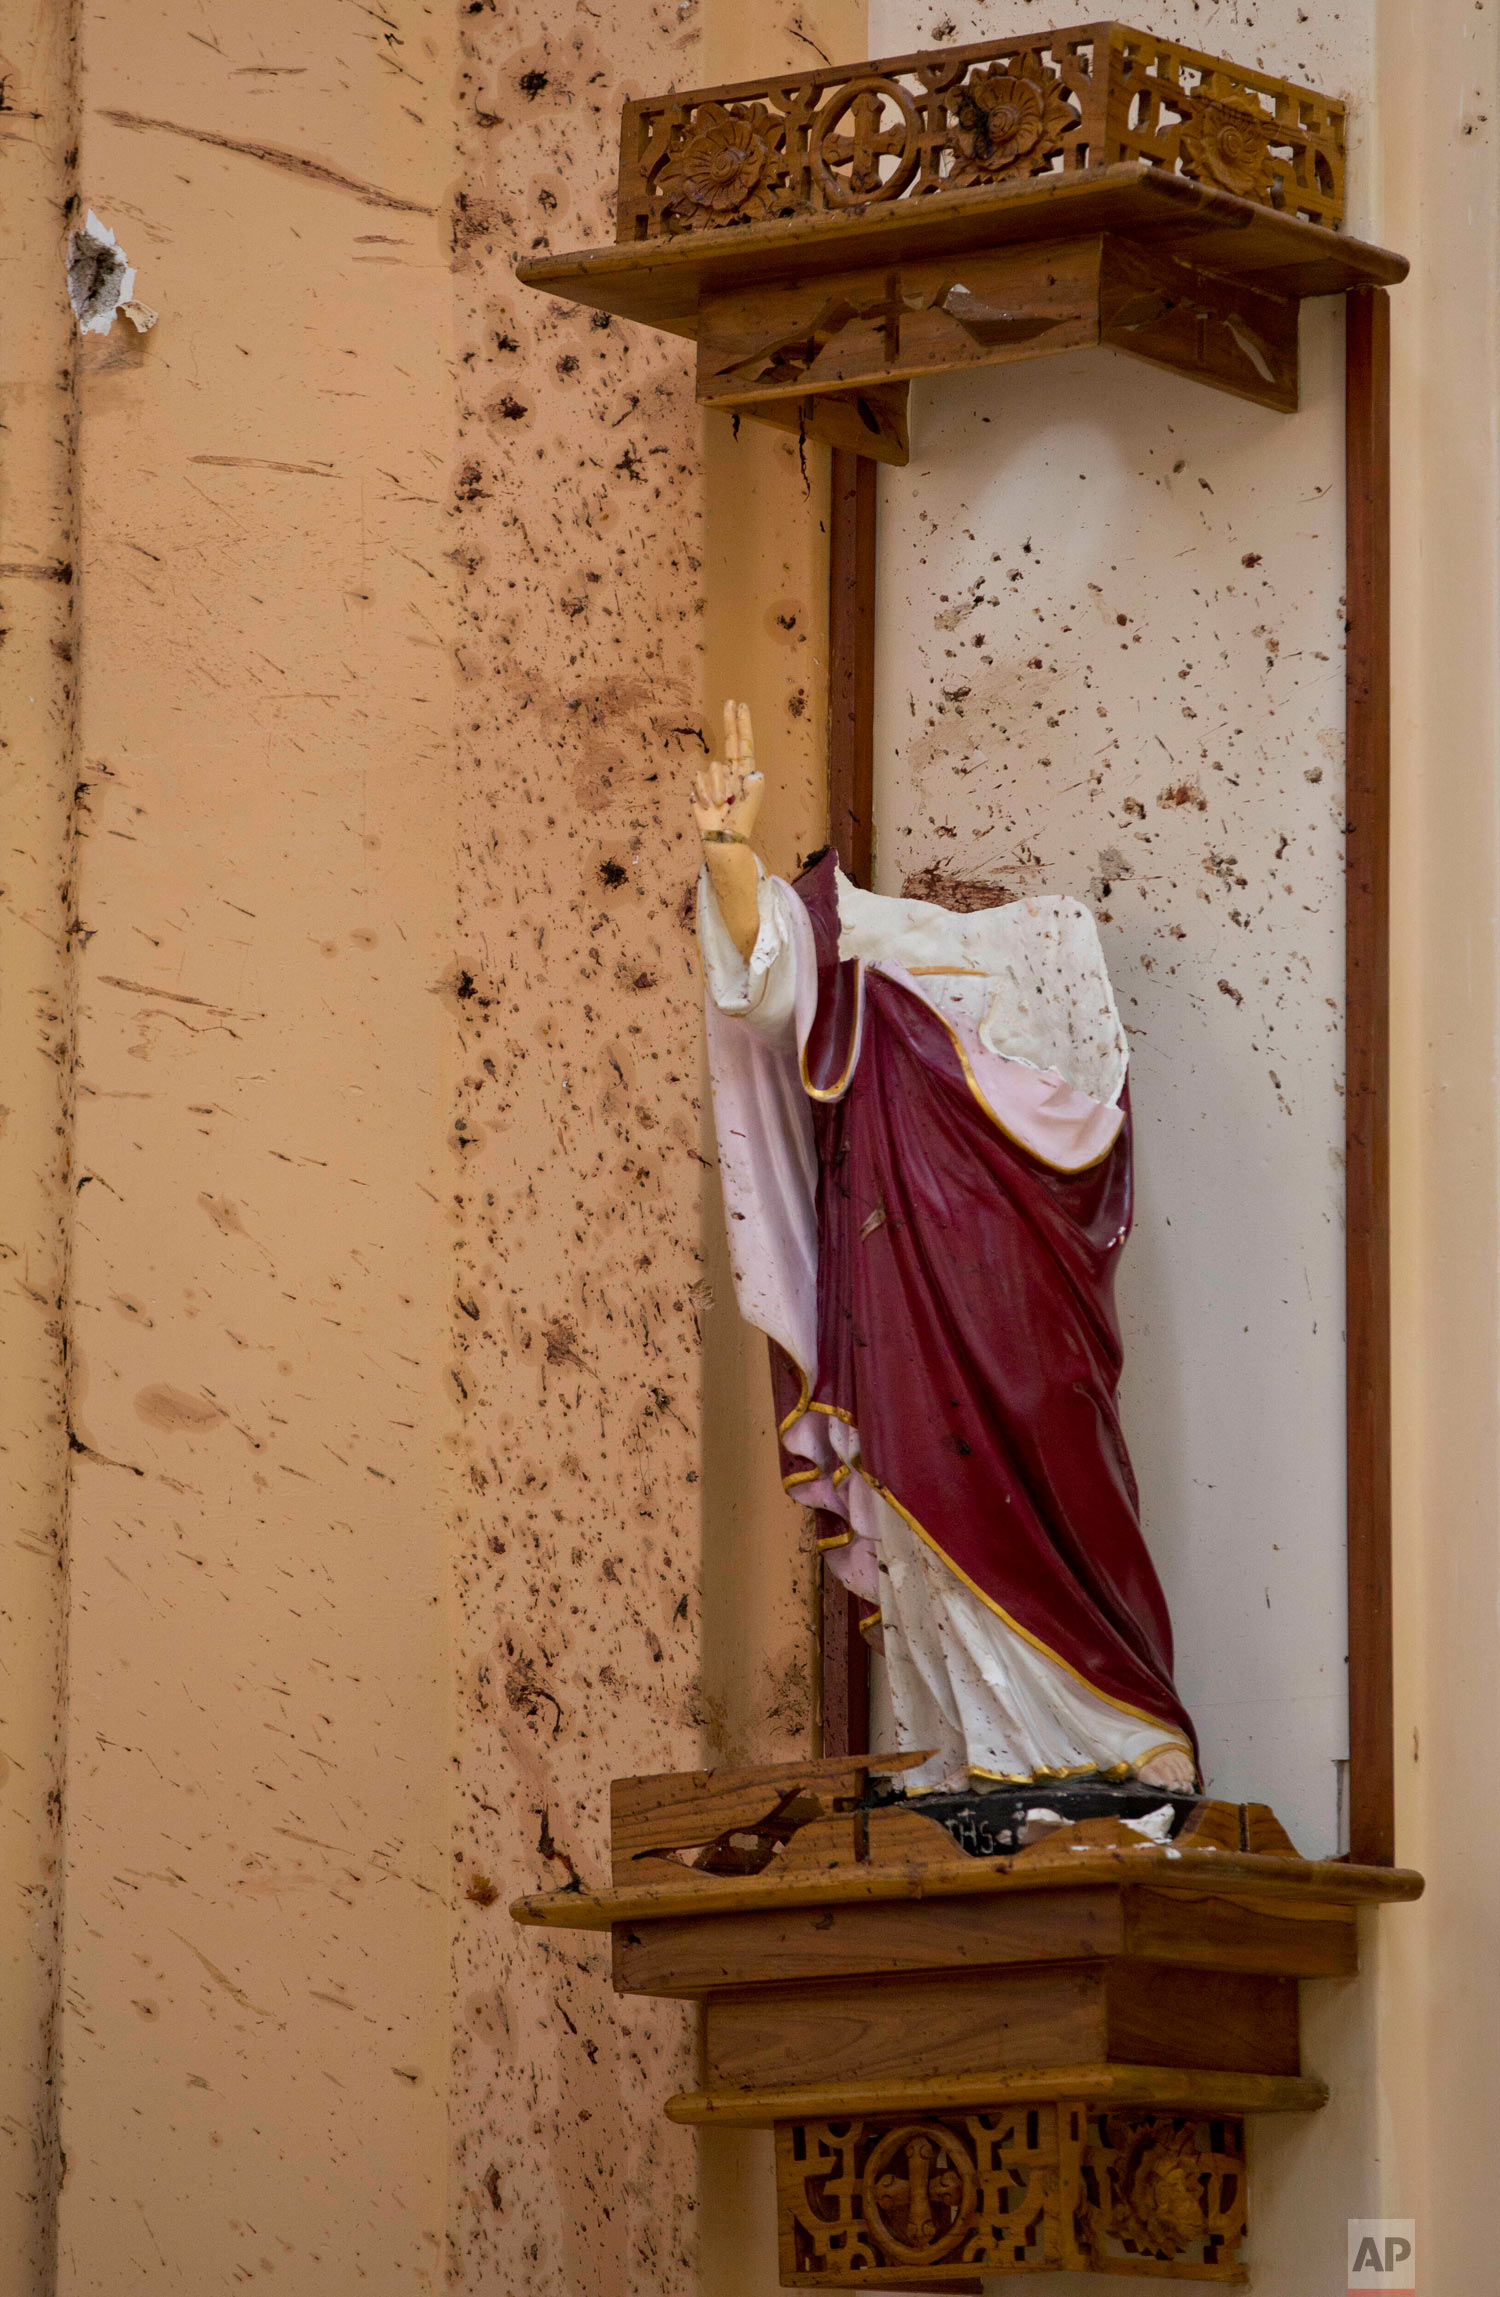 A part of a damaged religious shrine stays intact at the scene of a suicide bombing at St. Sebastian Church in Negombo, Sri Lanka, April 22, 2019. (AP Photo/Gemunu Amarasinghe)